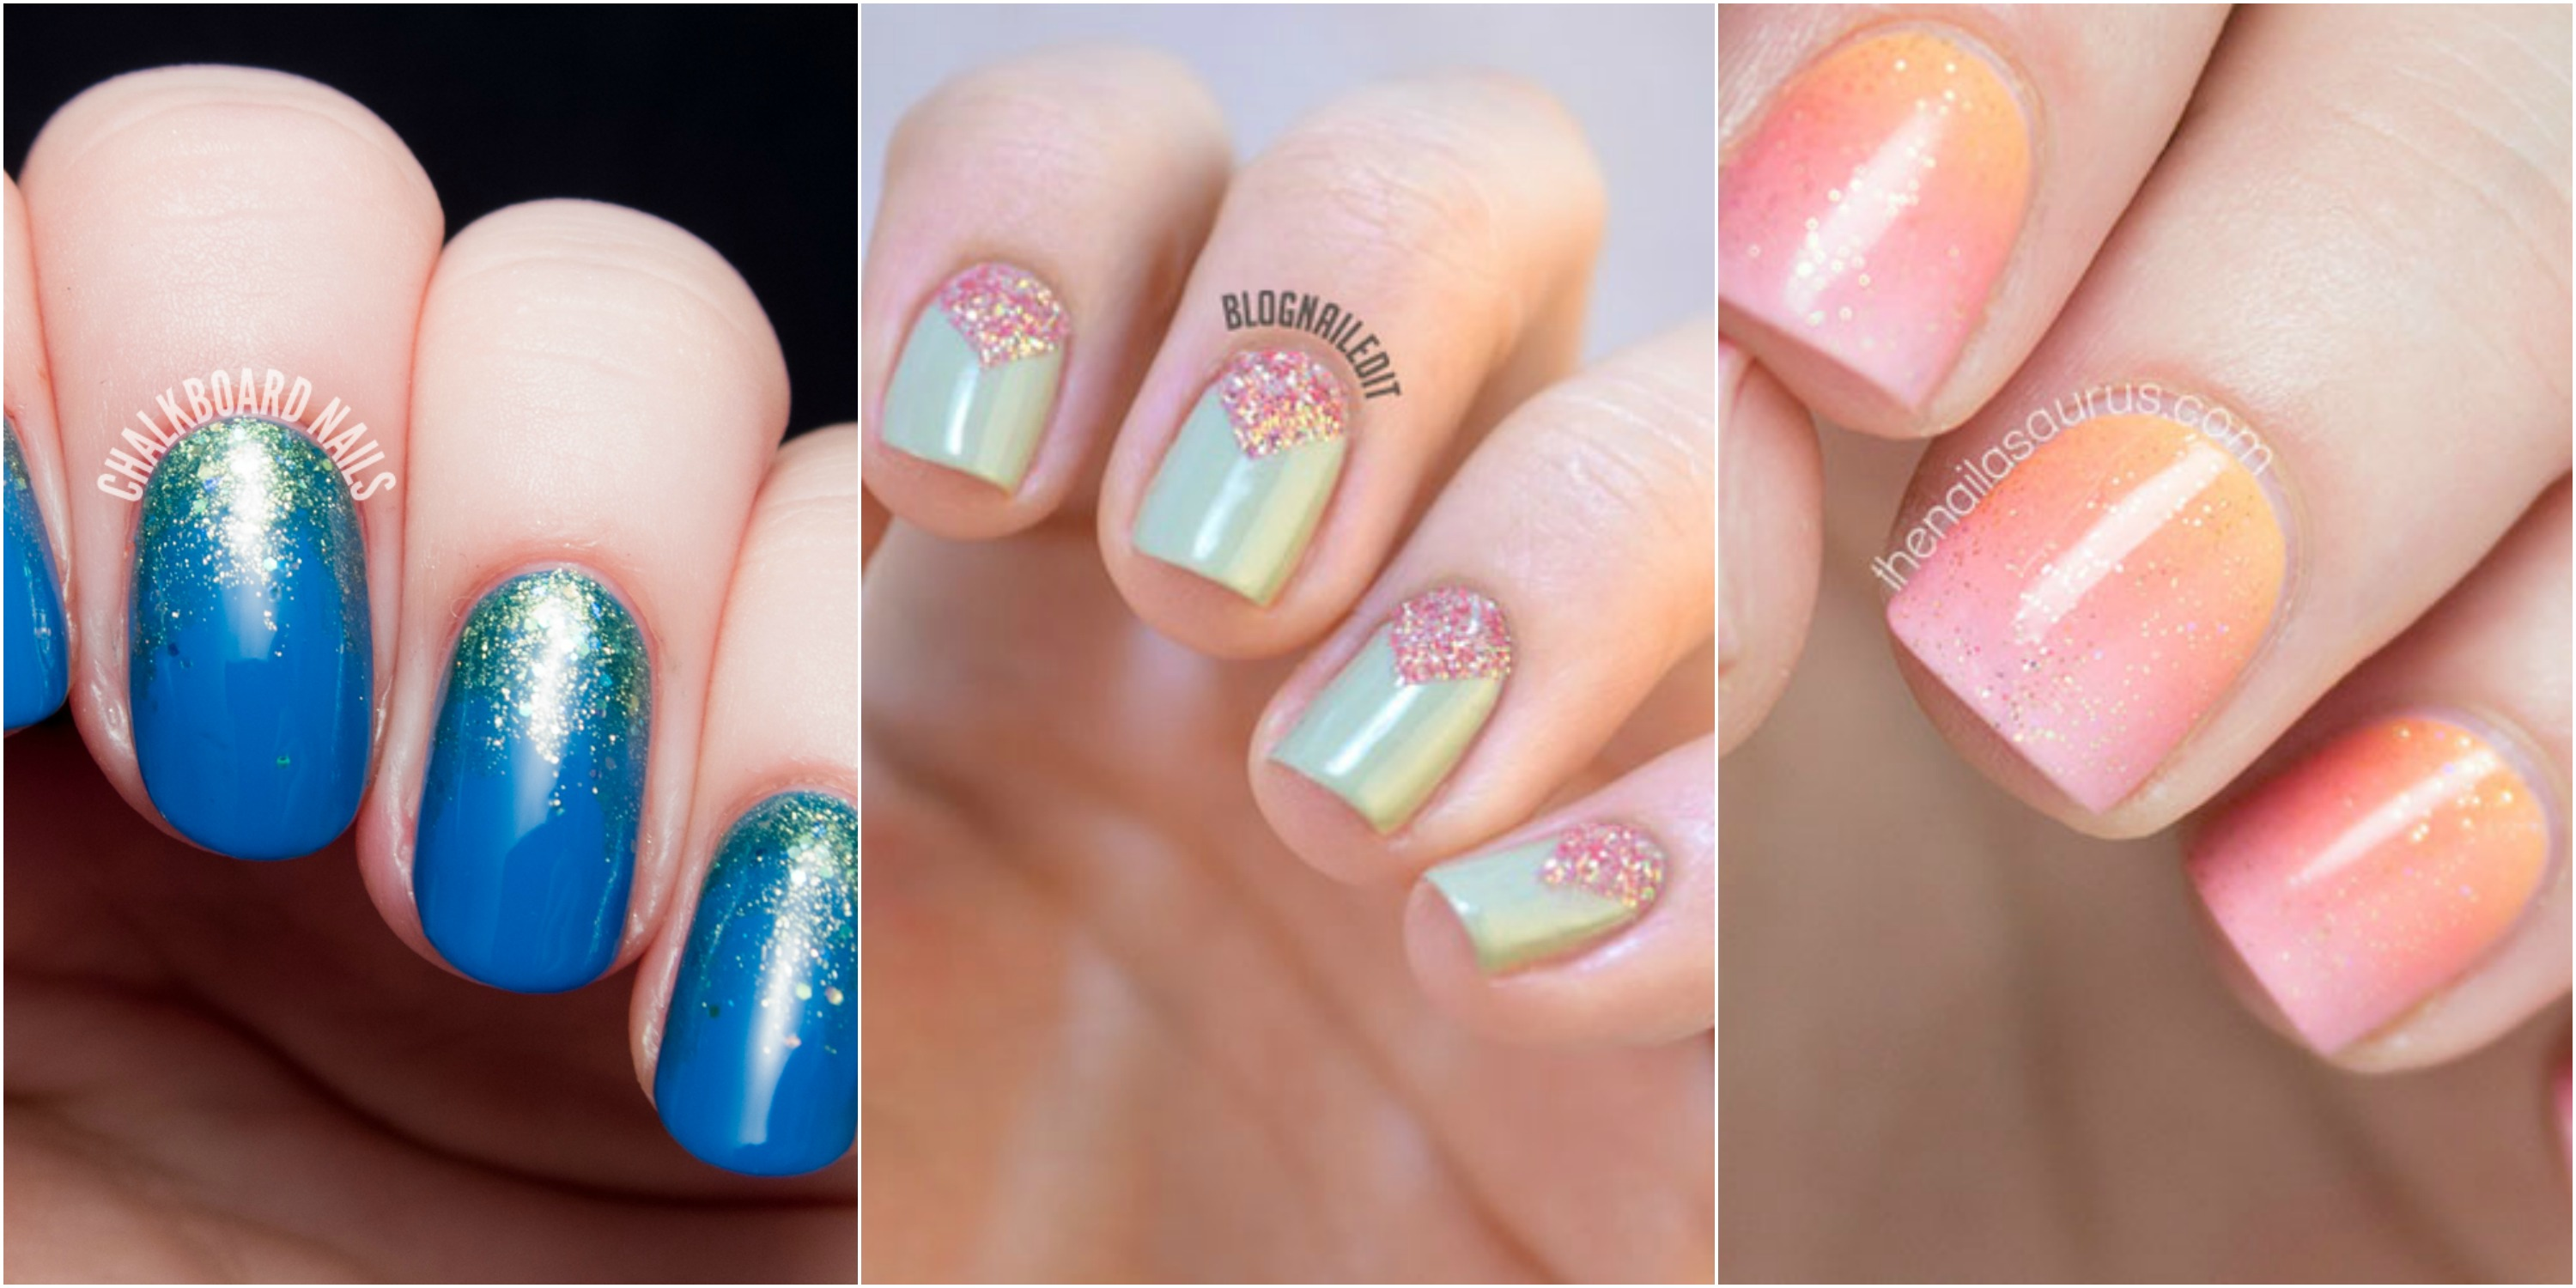 Nails Designs With Glitter